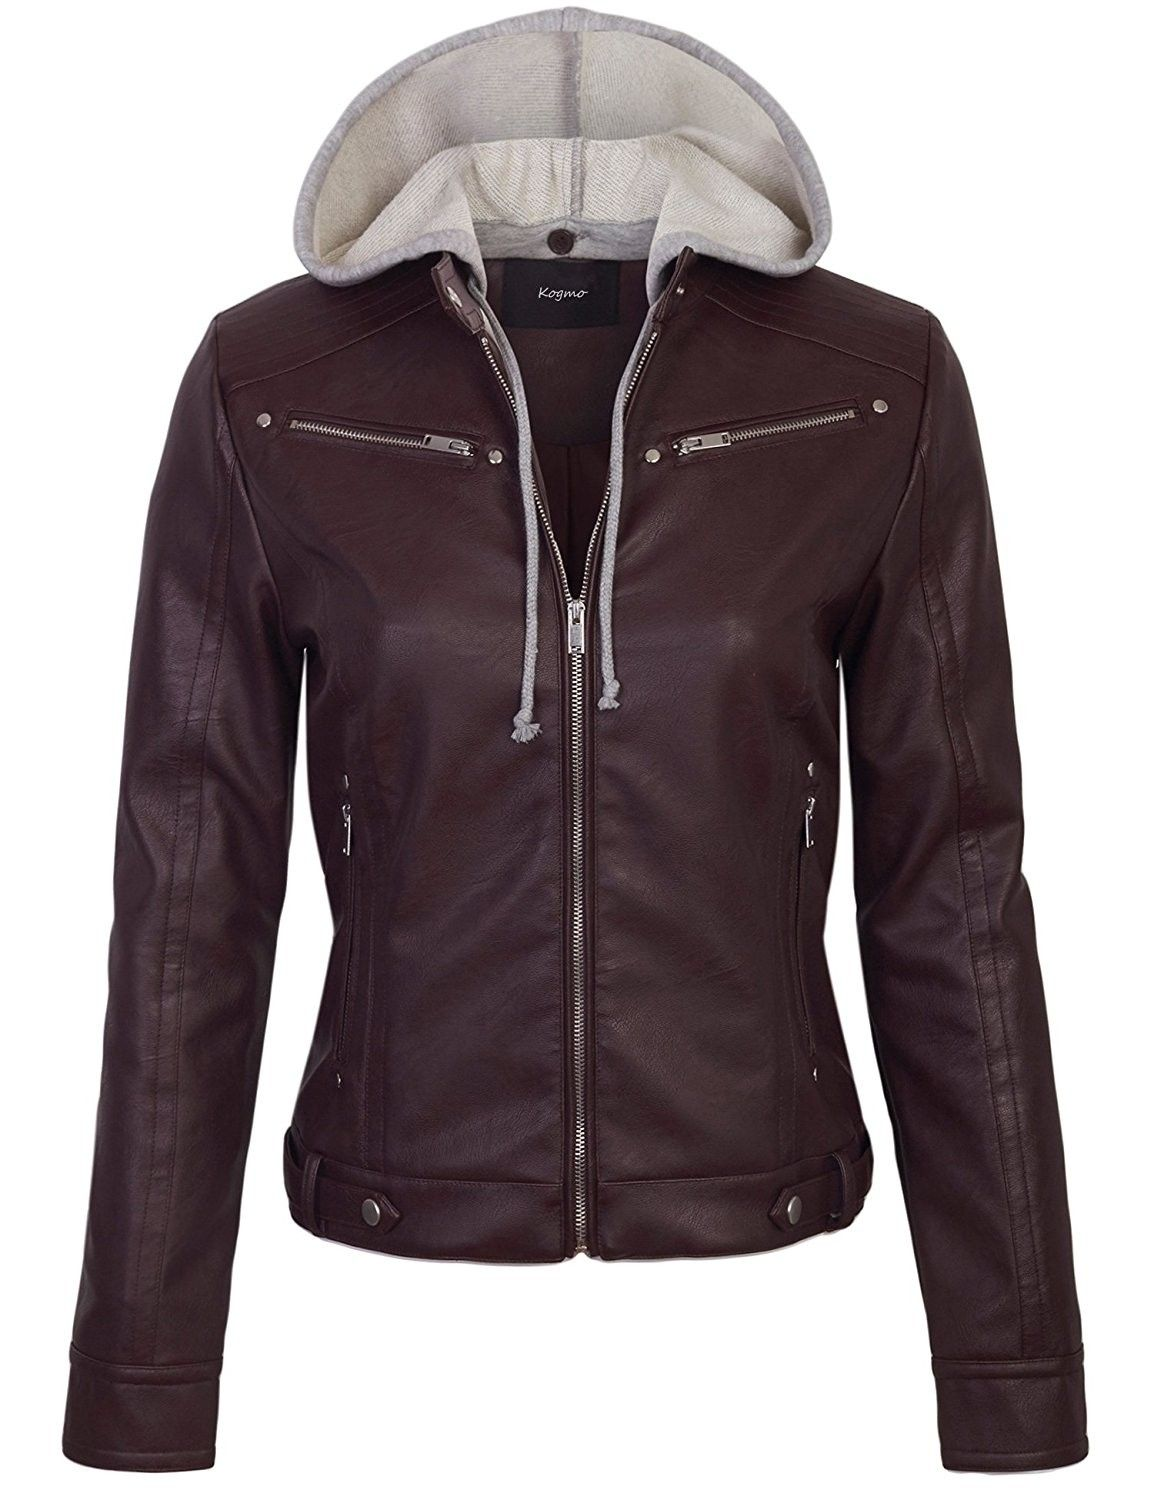 77c1109ddaf46 Womens Faux PU Leather Zip Up Casual Moto Jacket With Hoodie -  576_maroon_burgundy - C5186TN0Q2E -